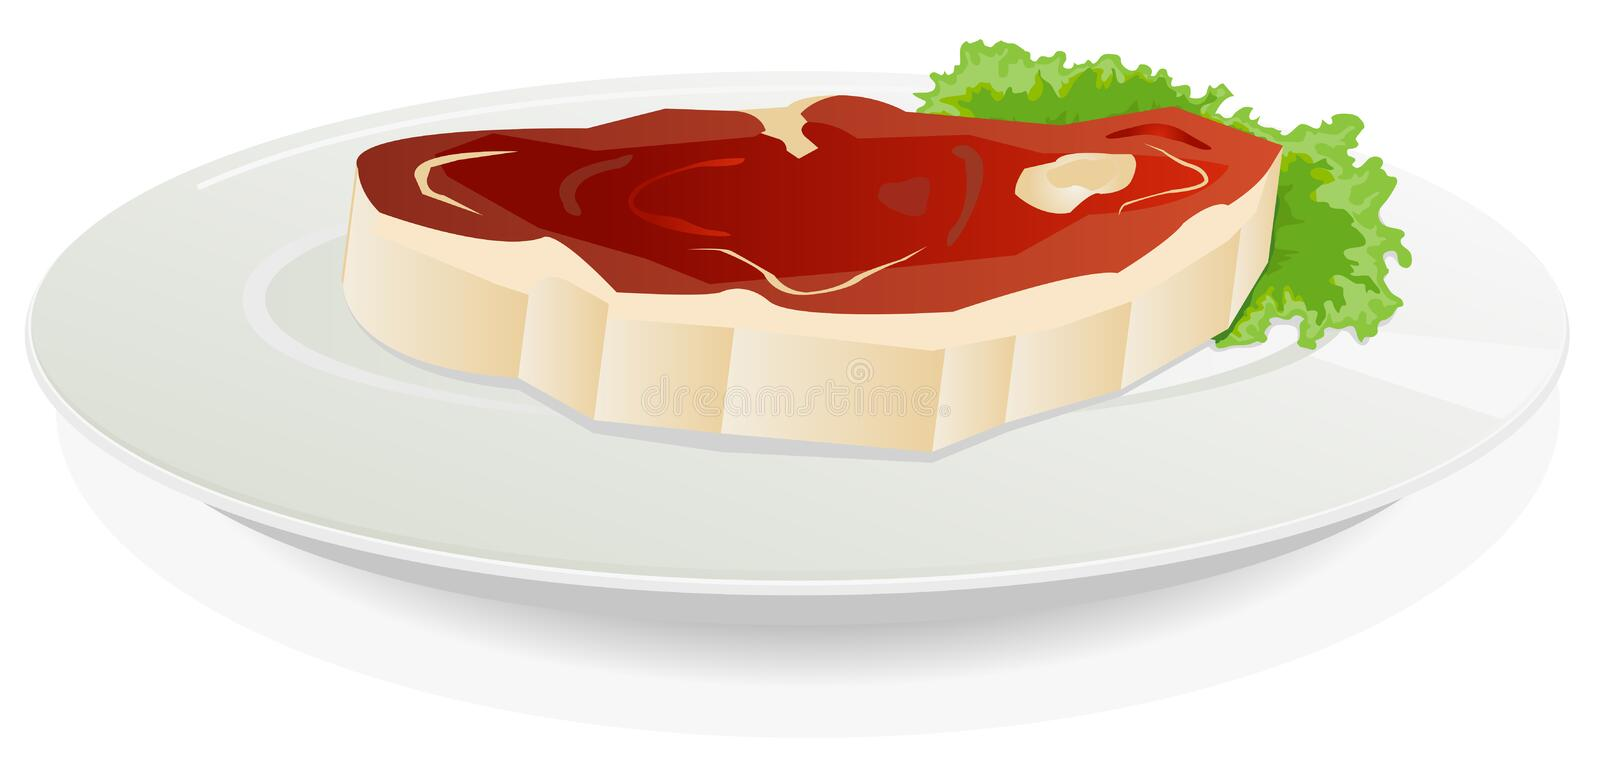 Download Piece Of Raw Meat On A Dish With Salad Stock Vector - Image: 25278343